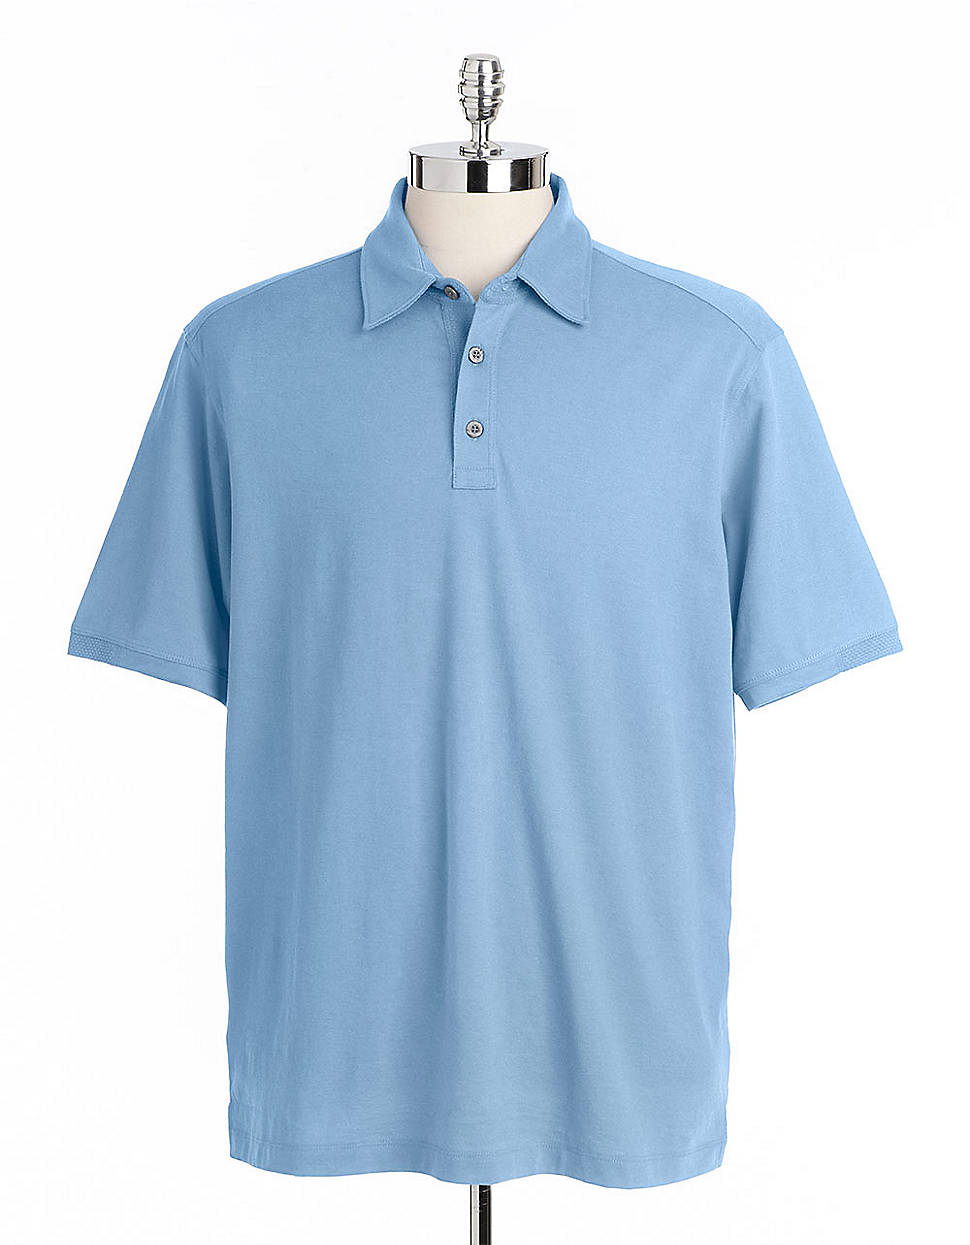 Tommy bahama palm cove spectator polo shirt in blue for for Tommy bahama polo shirts on sale